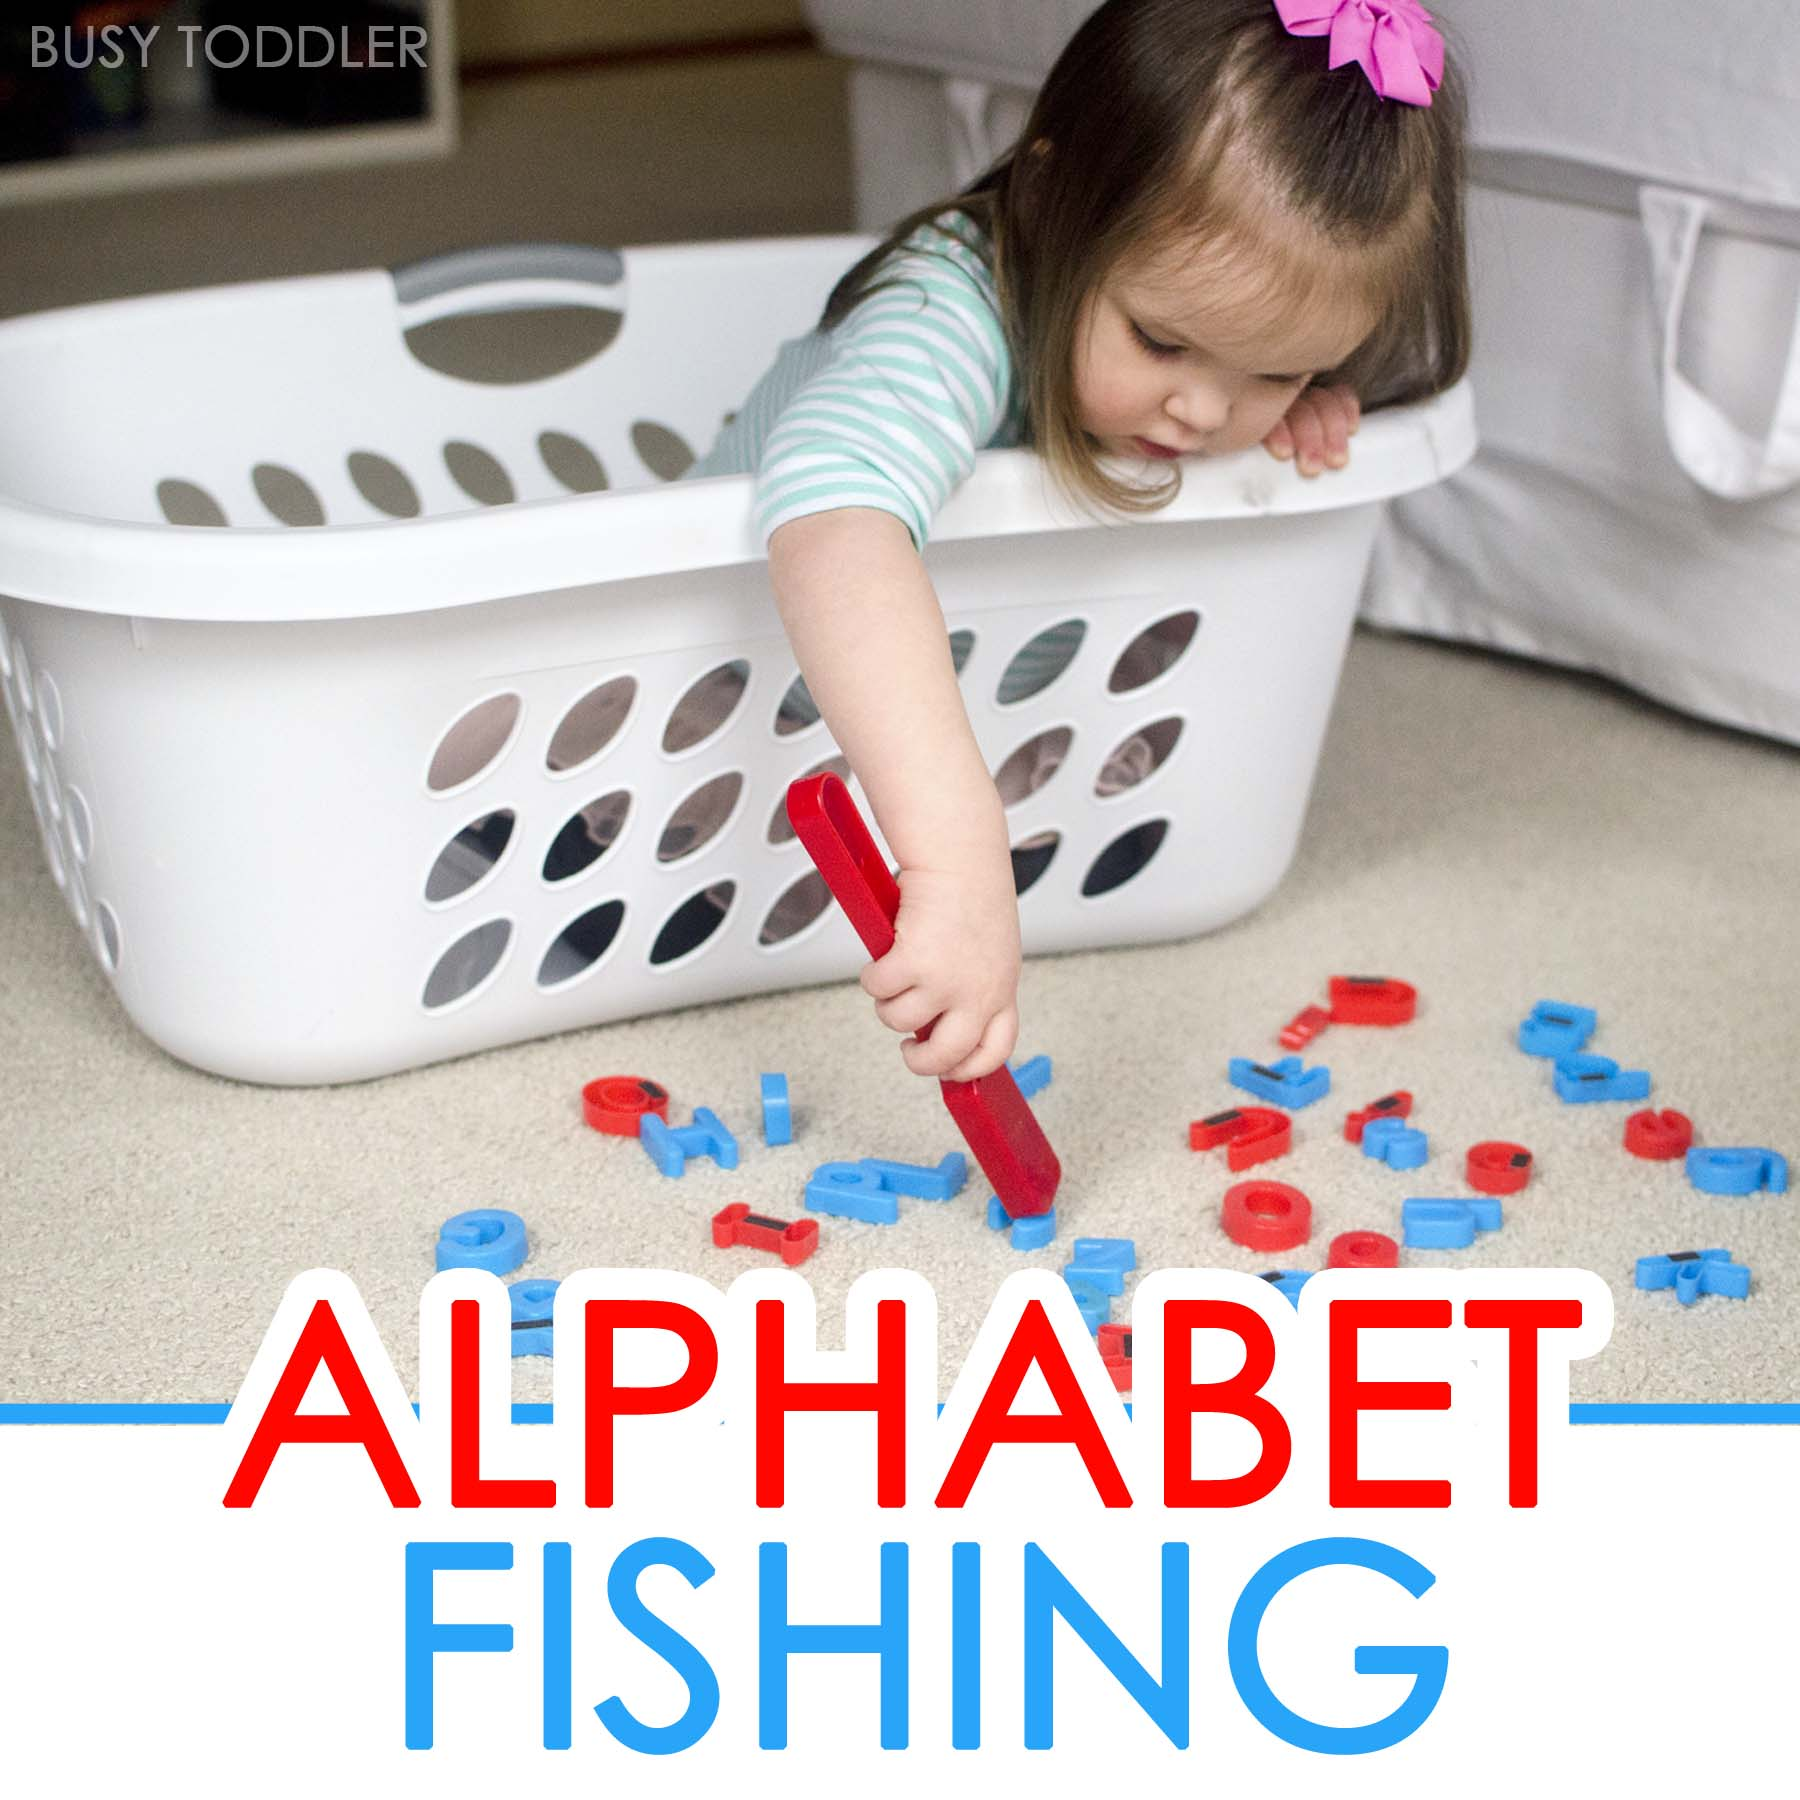 ALPHABET FISHING: An easy toddler alphabet game that's perfect for rainy days. A quick and easy toddler activity! A toddler literacy activity that's simple to set up.